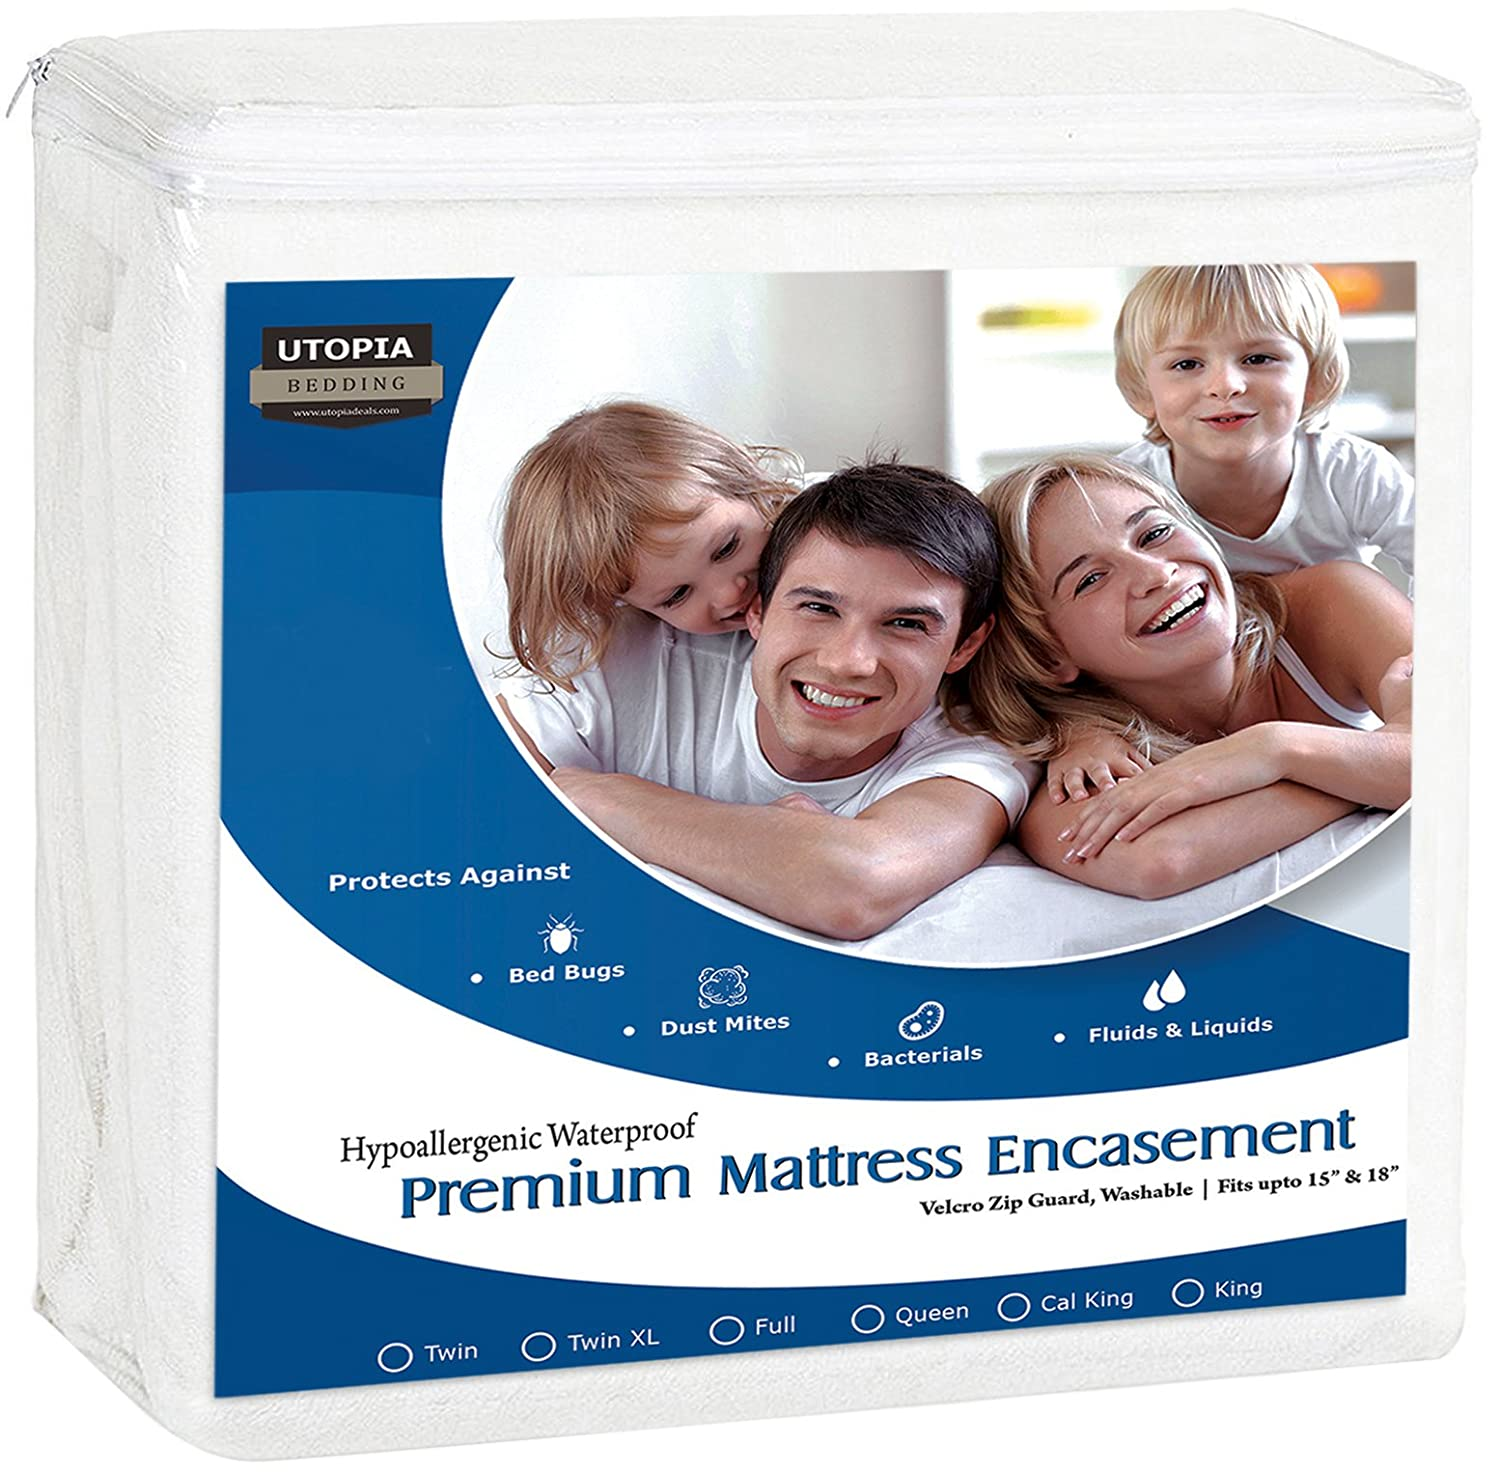 (Twin) Premium Zippered Waterproof Mattress Encasement Bed Bug Proof Mattress Cover Ample Zipper Opening for Mattress Protector Protection from Fluids, Insects and Dust Mites (Twin) by Utopia Bedding B01JIV5YNE ツイン ツイン